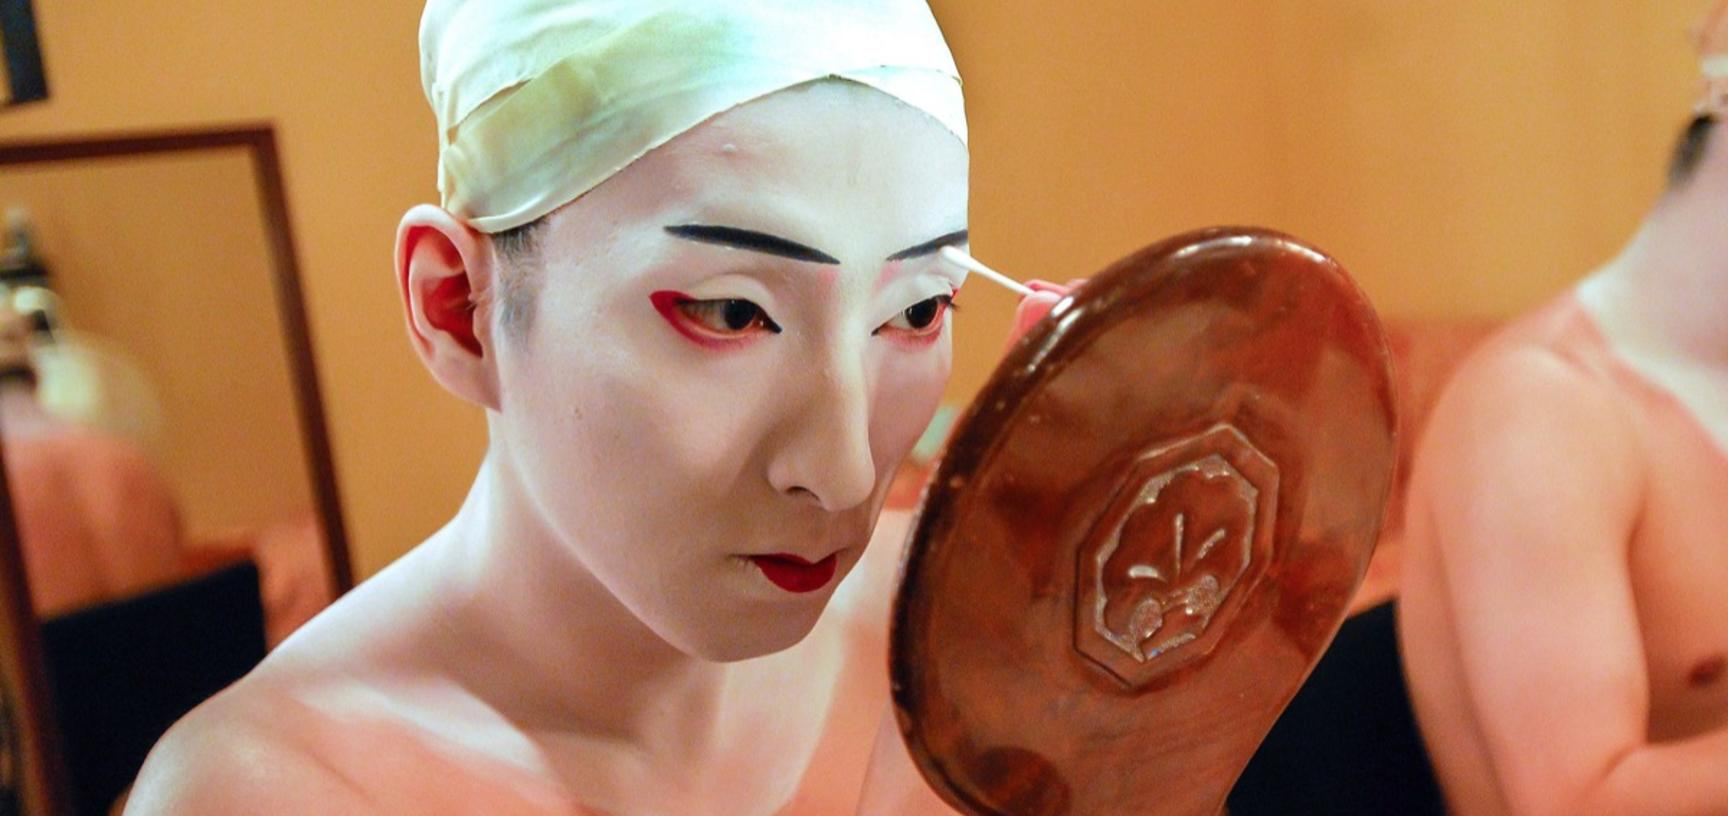 An actor applies heavy make-up to their face while looking in a hand-held wooden mirror.